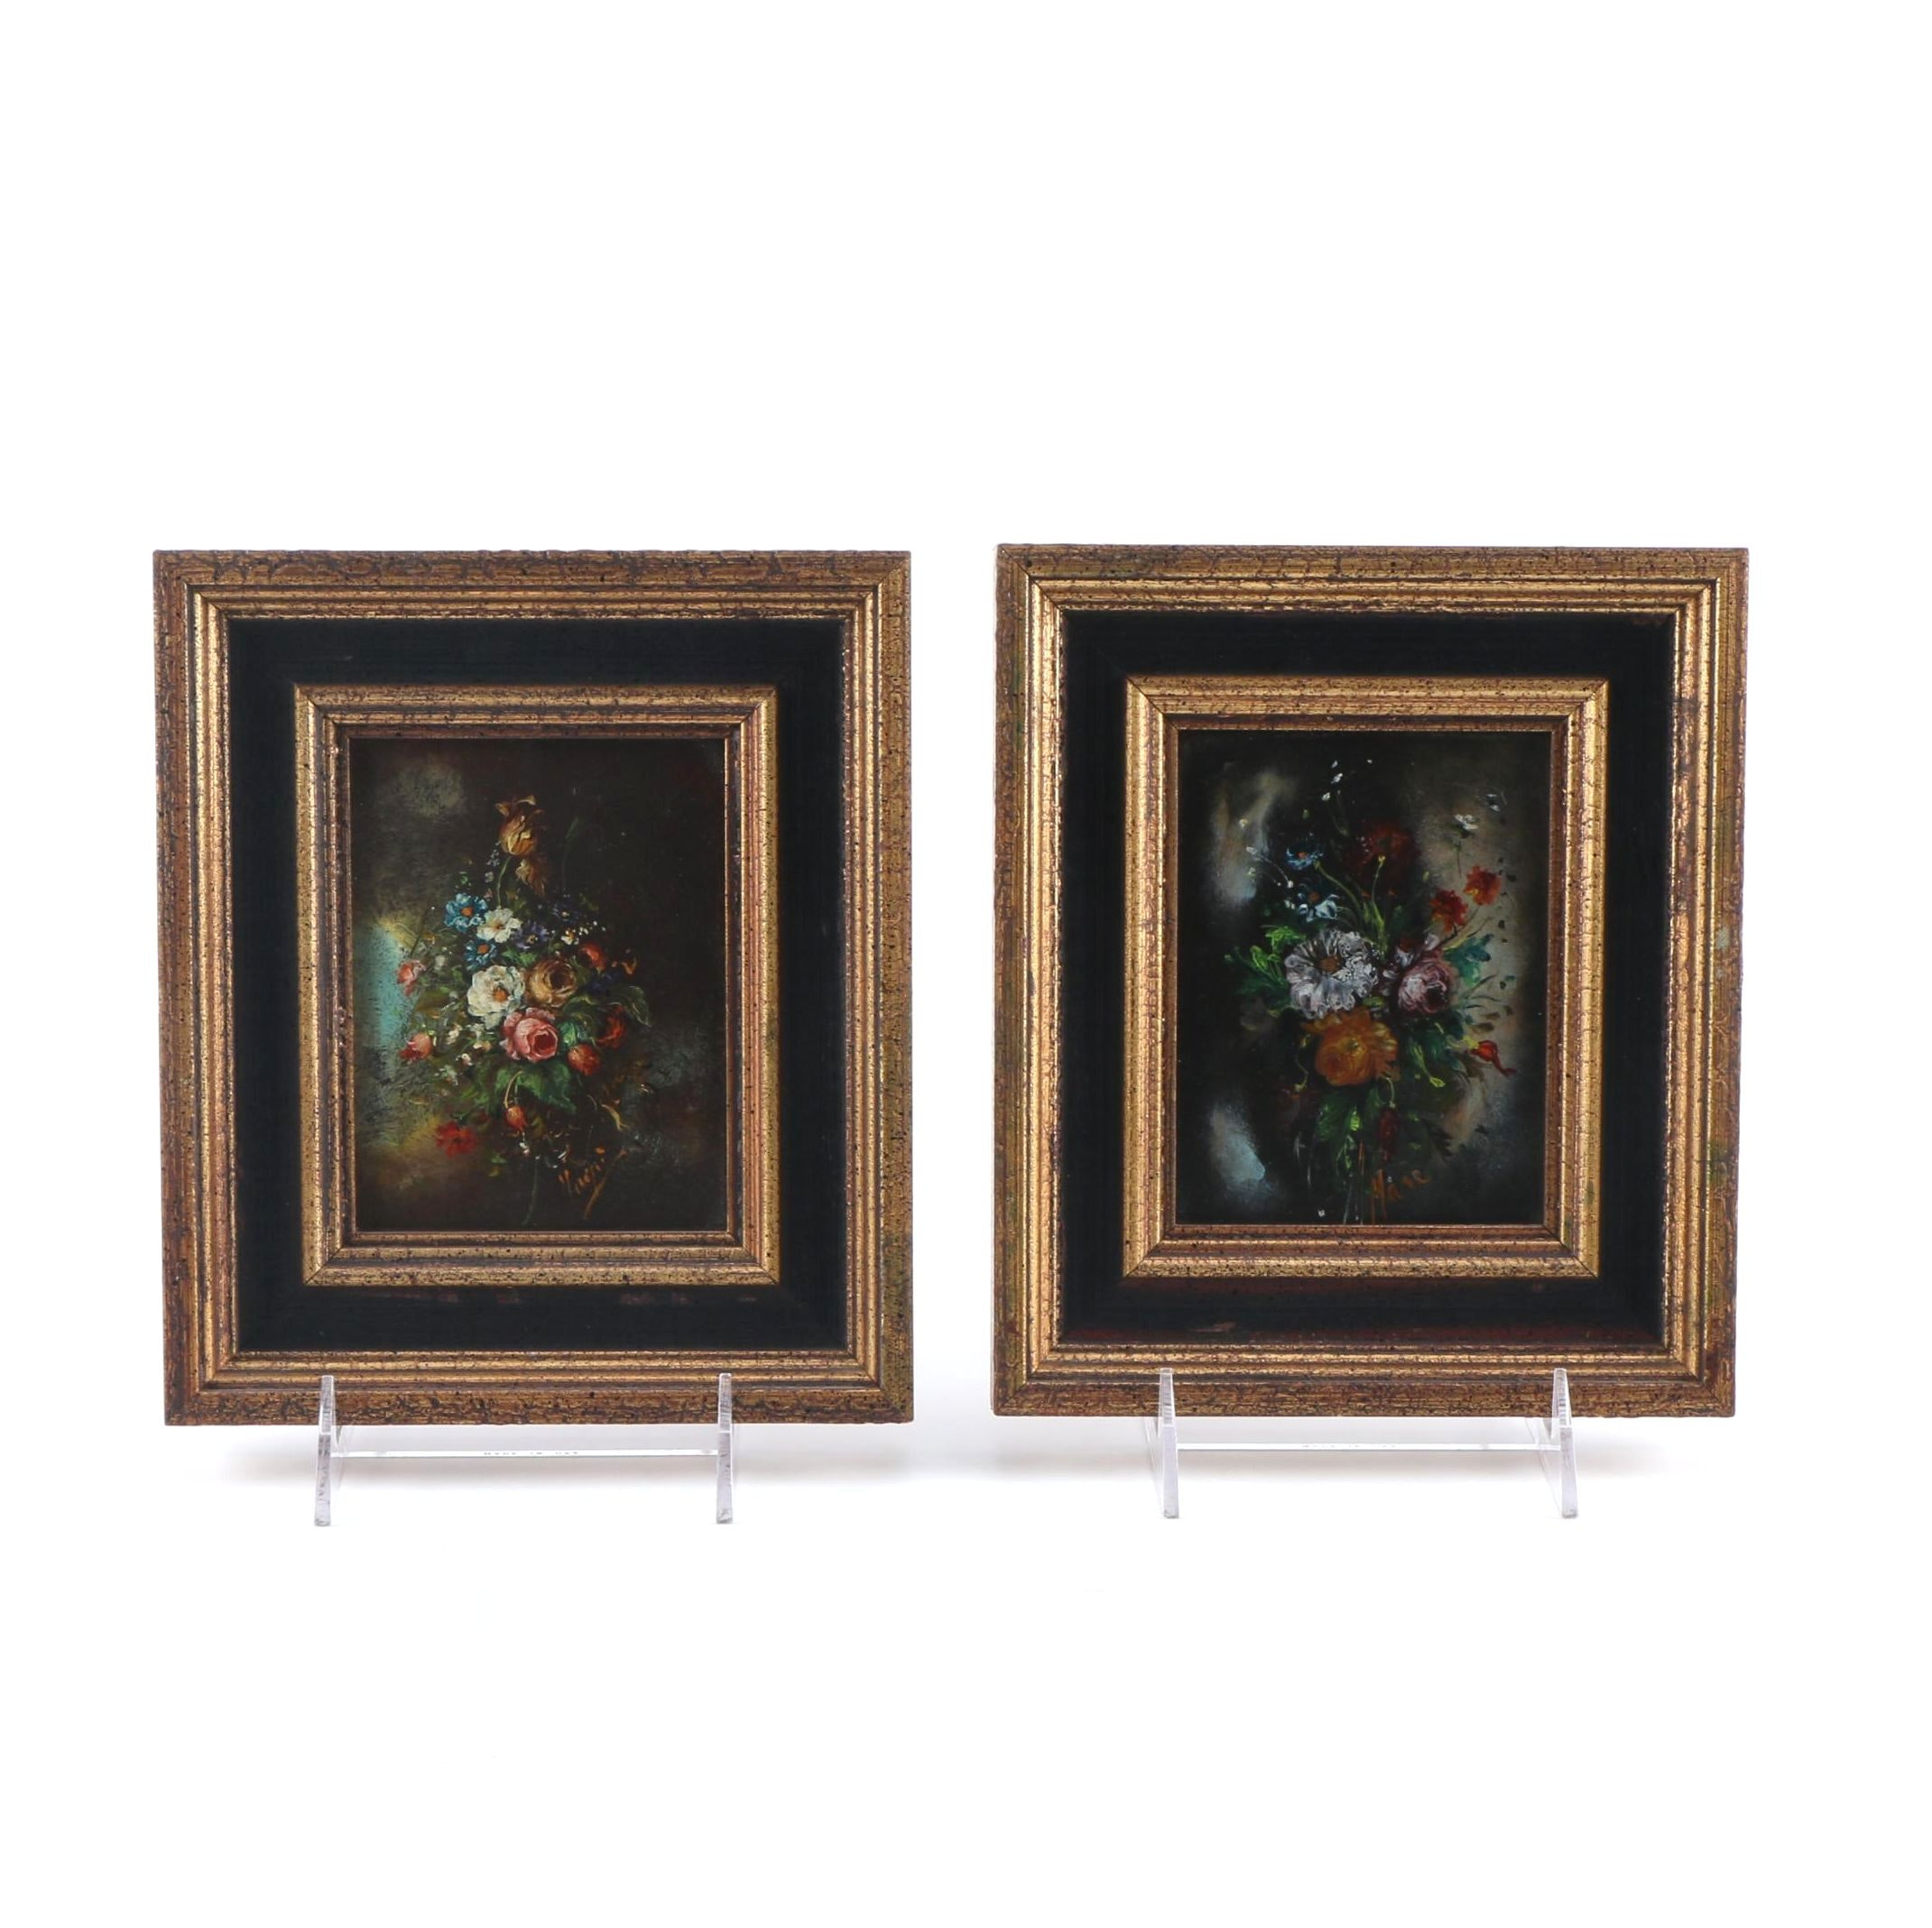 Original Oil Painting on Board Floral Still Lifes